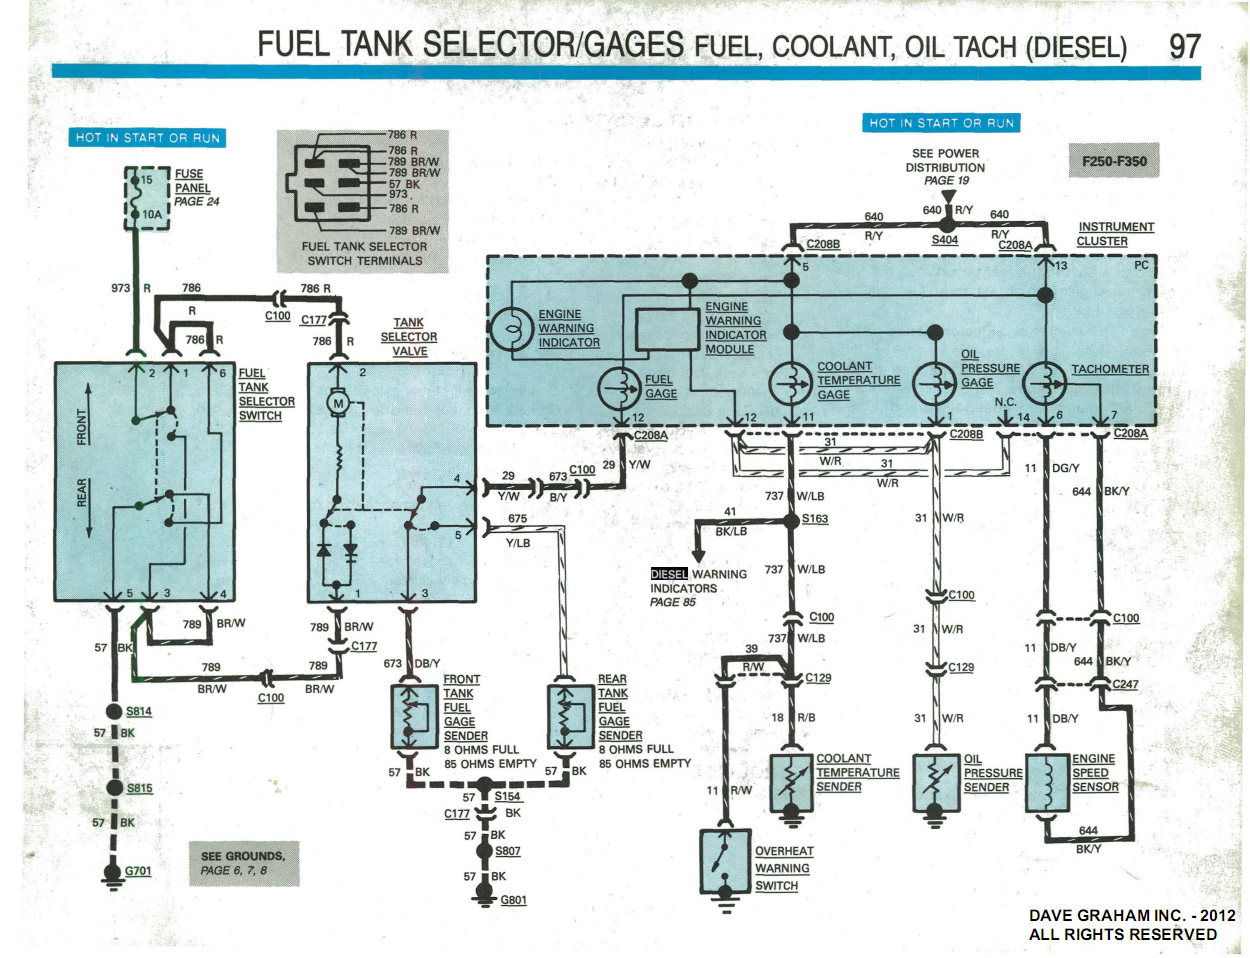 Need Wiring Diagram For Acldelco U7000 - Auto Electrical Wiring ...